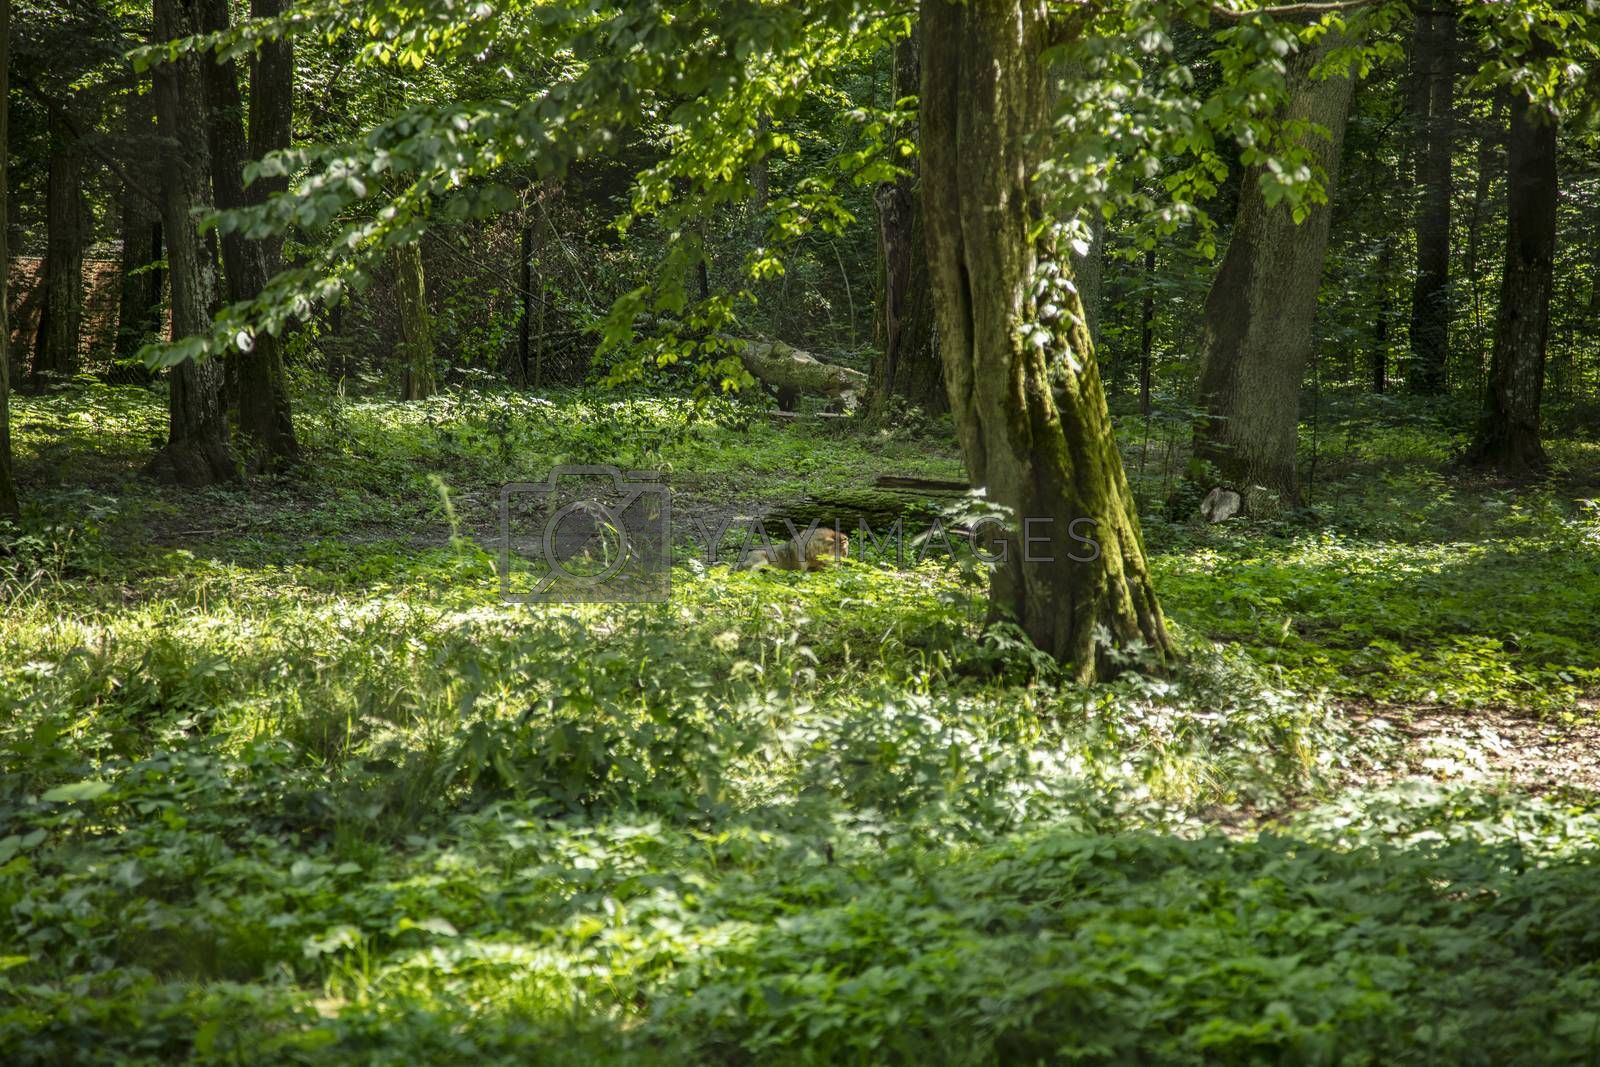 beautiful forest landscape in the Bialowieza Forest